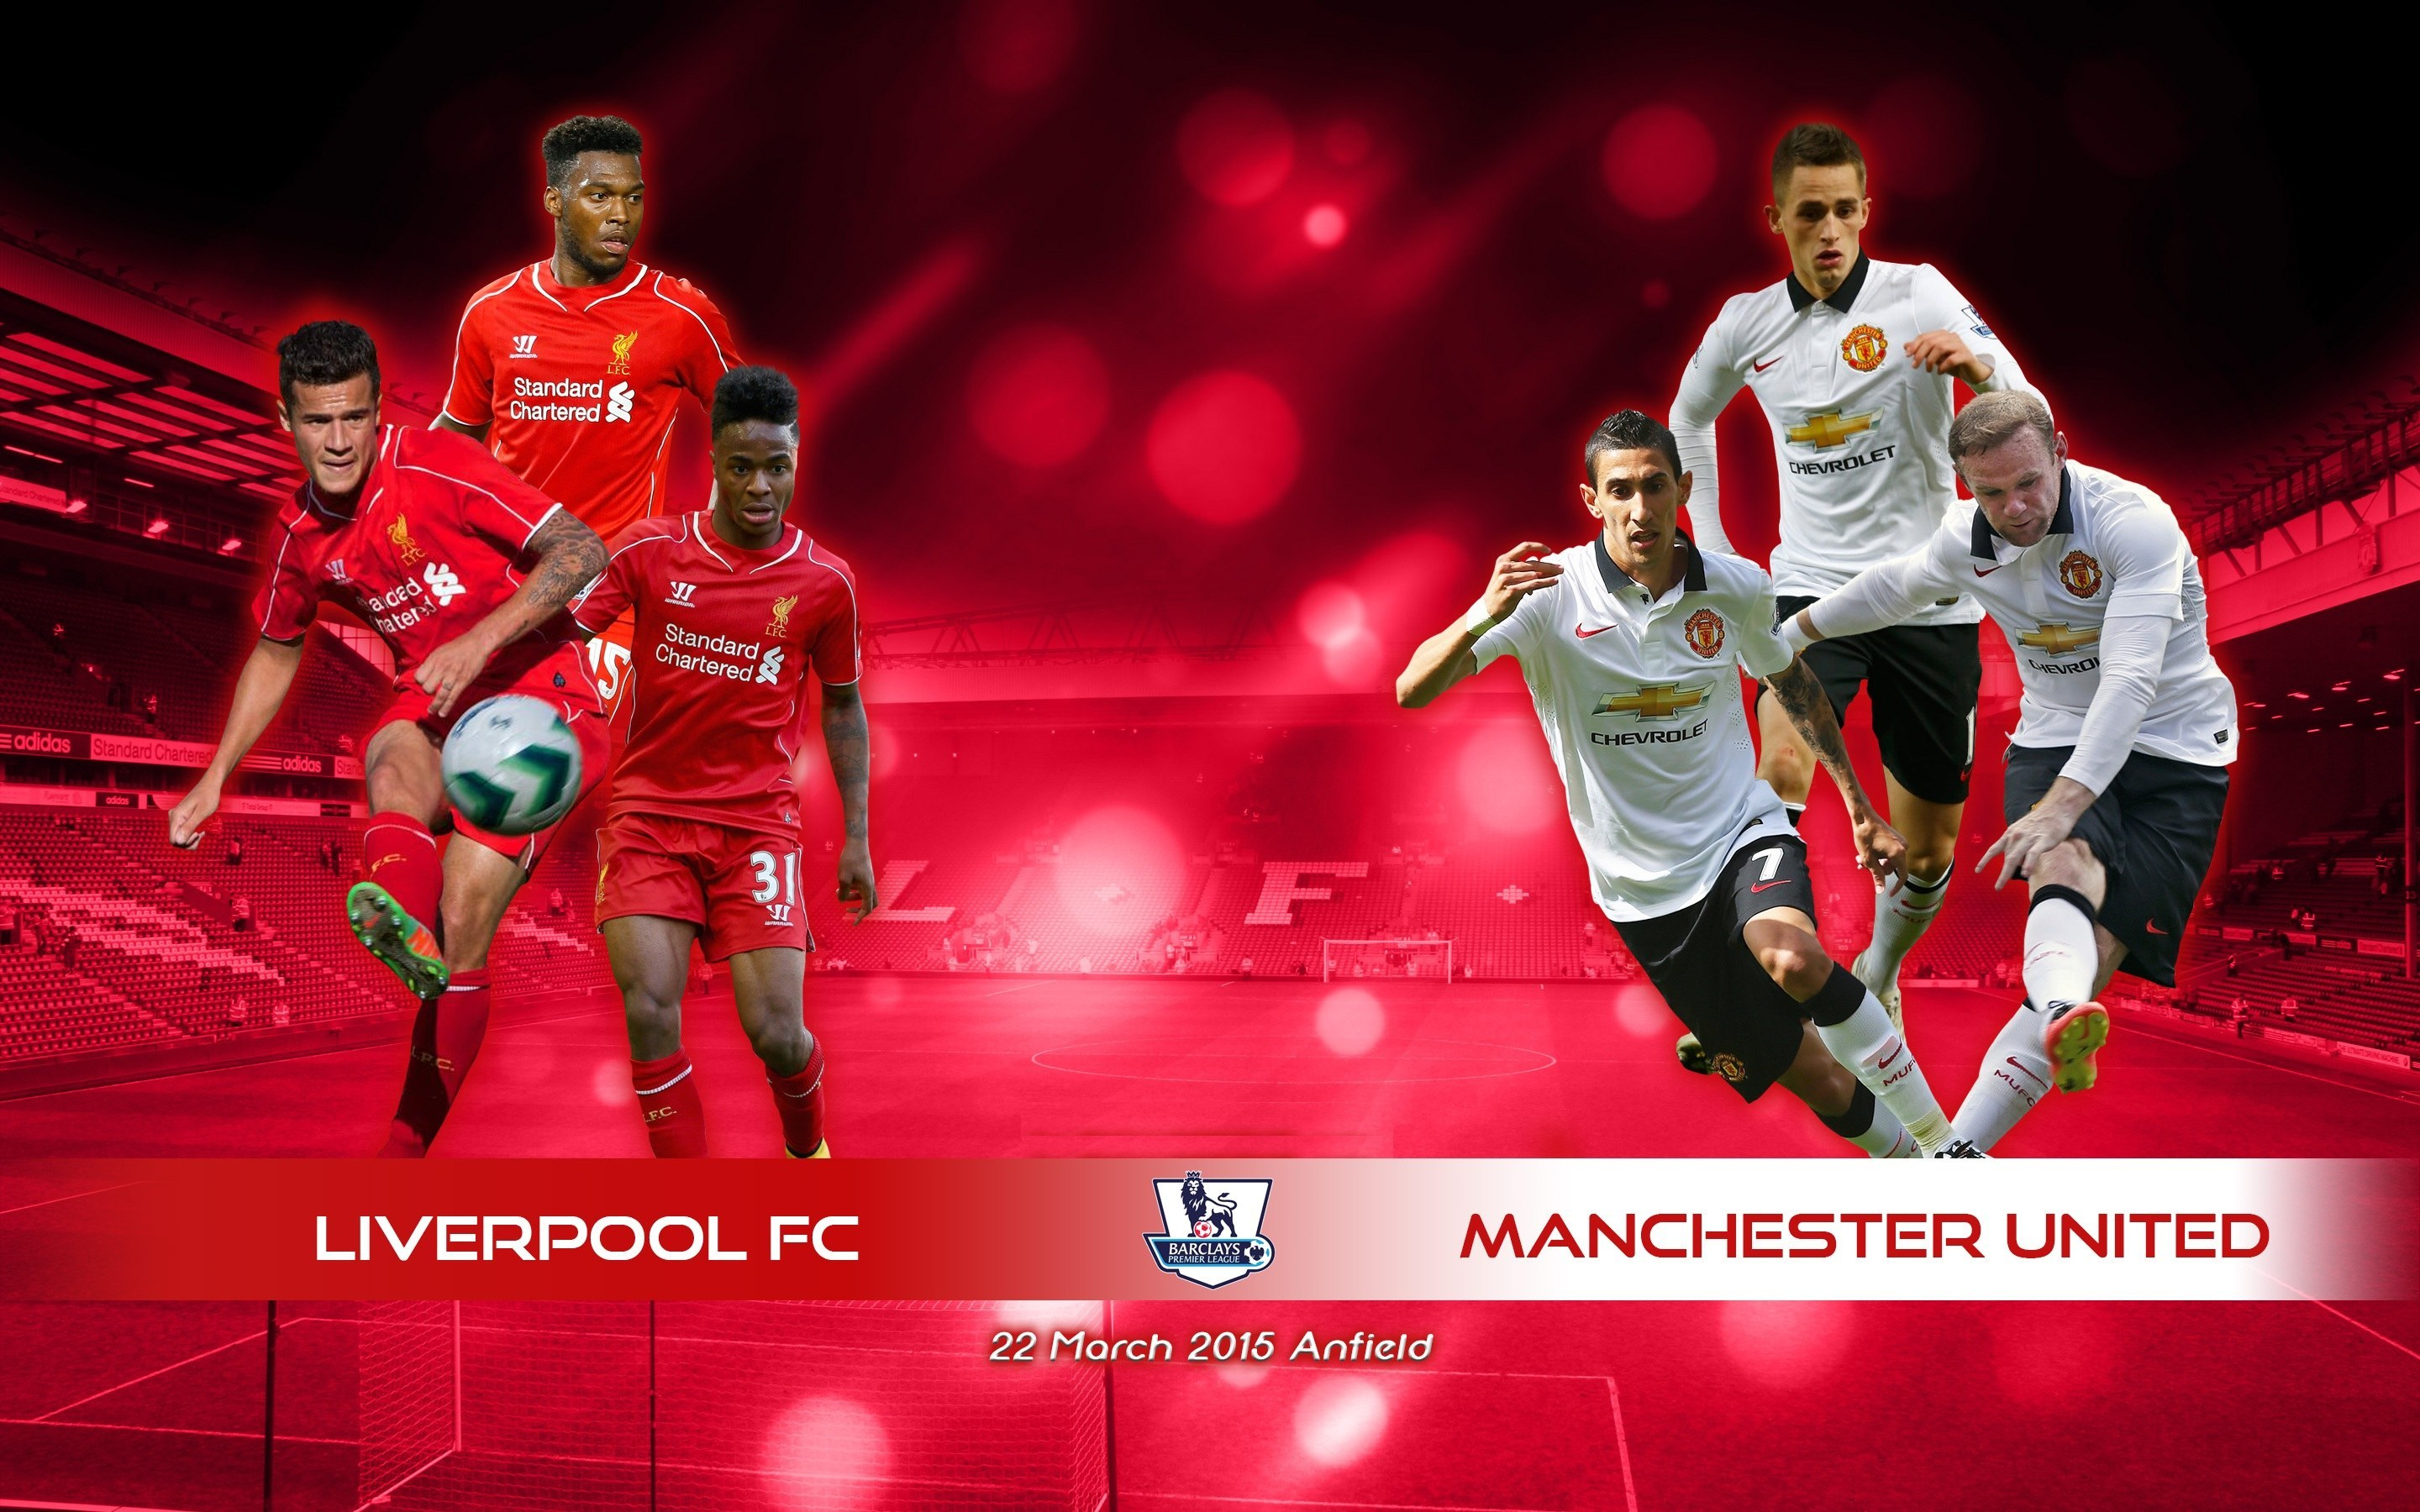 manchester united boys vs liverpool soccer 2015 images